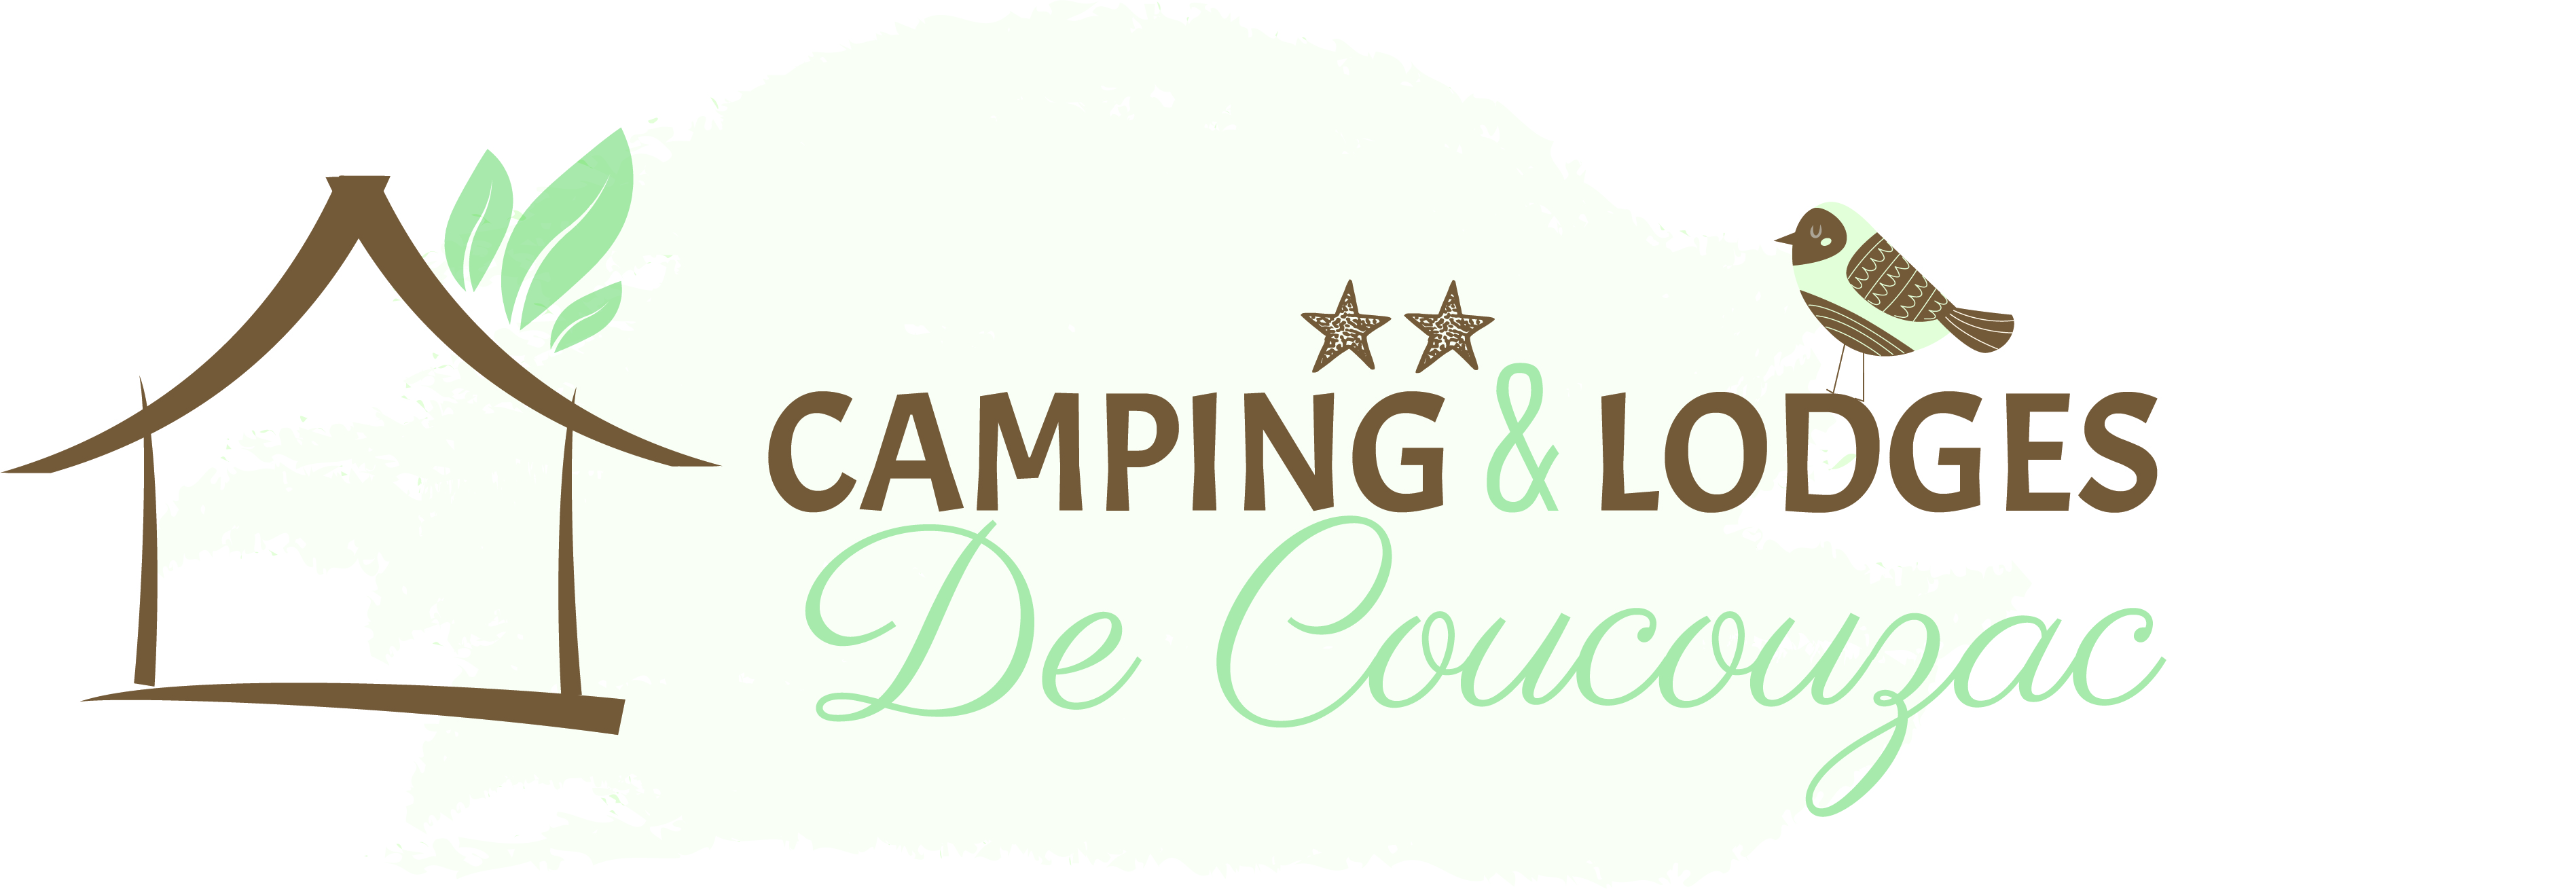 Camping & Lodges de Coucouzac